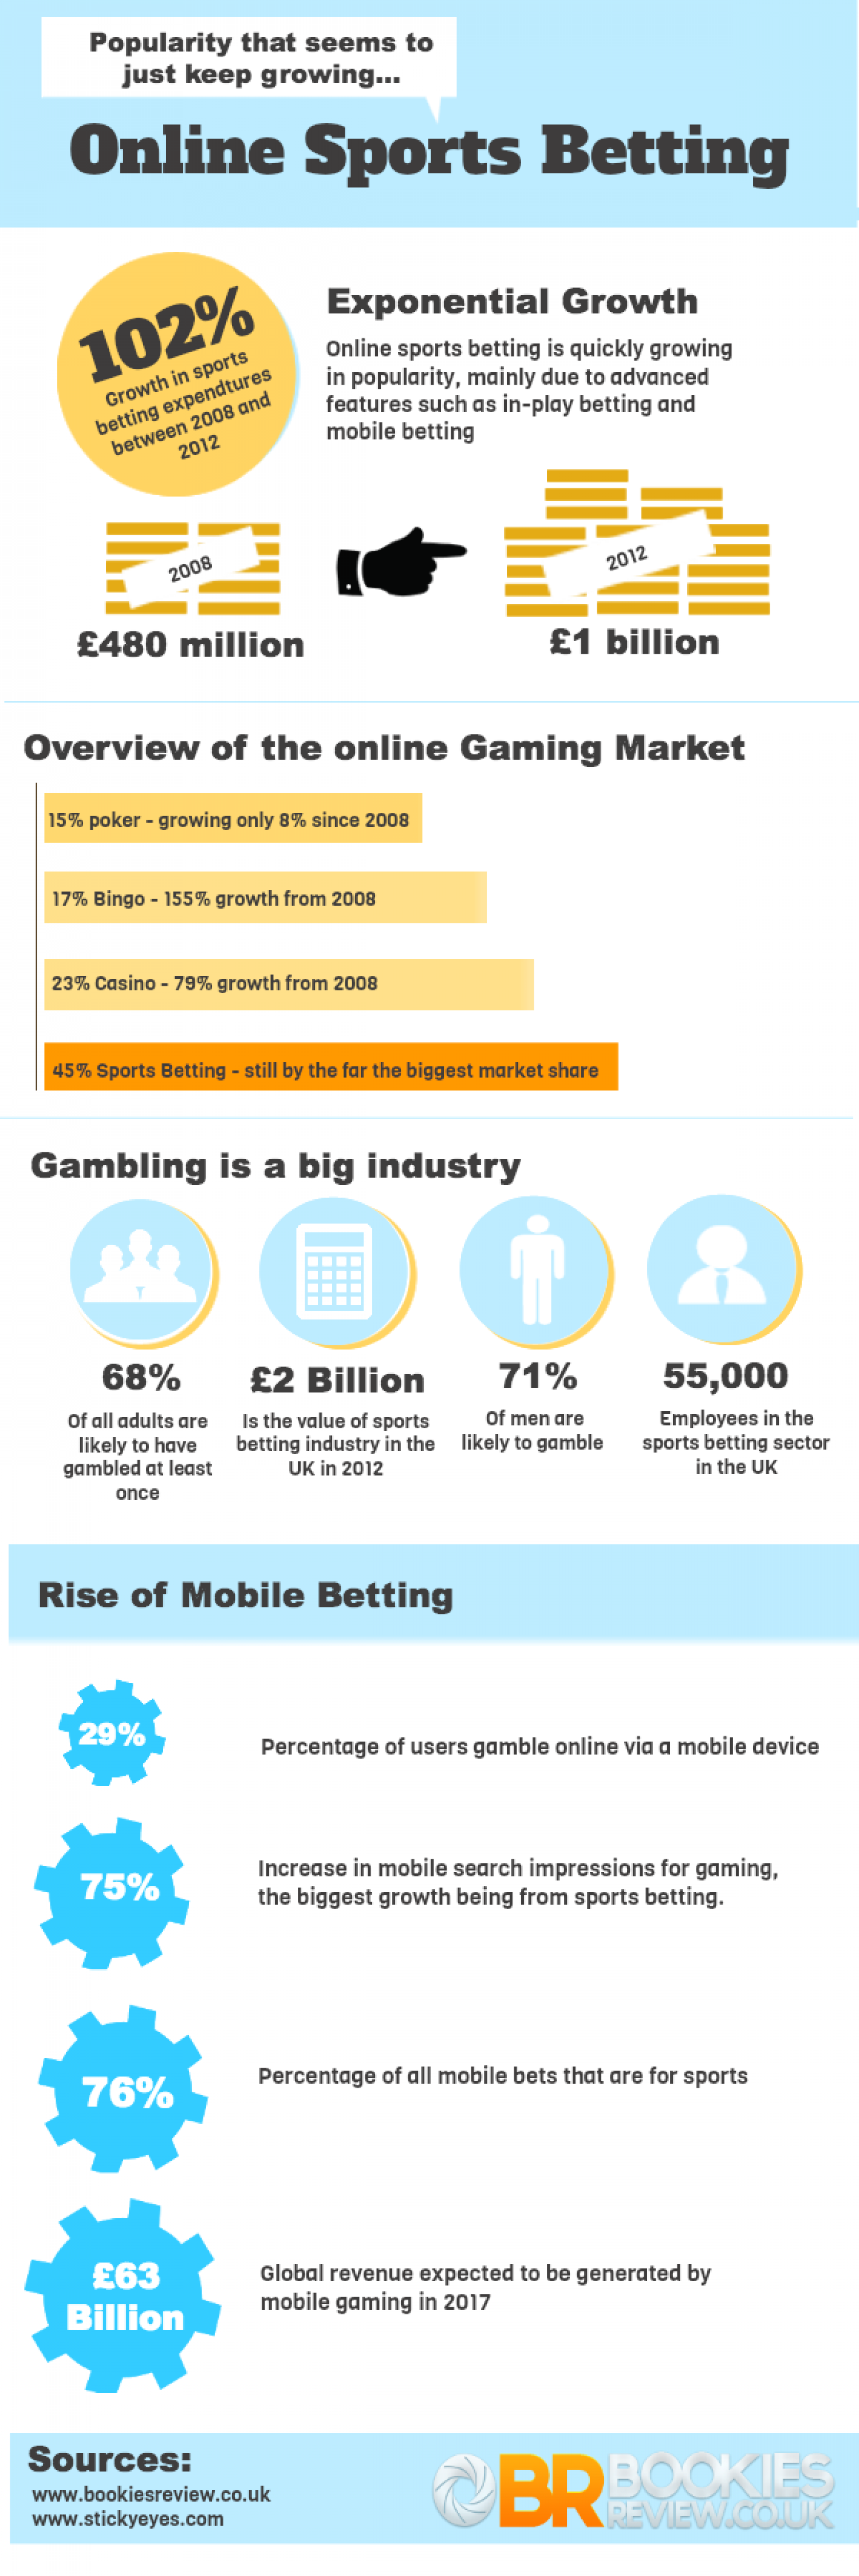 Guide to Online Sports Betting Infographic